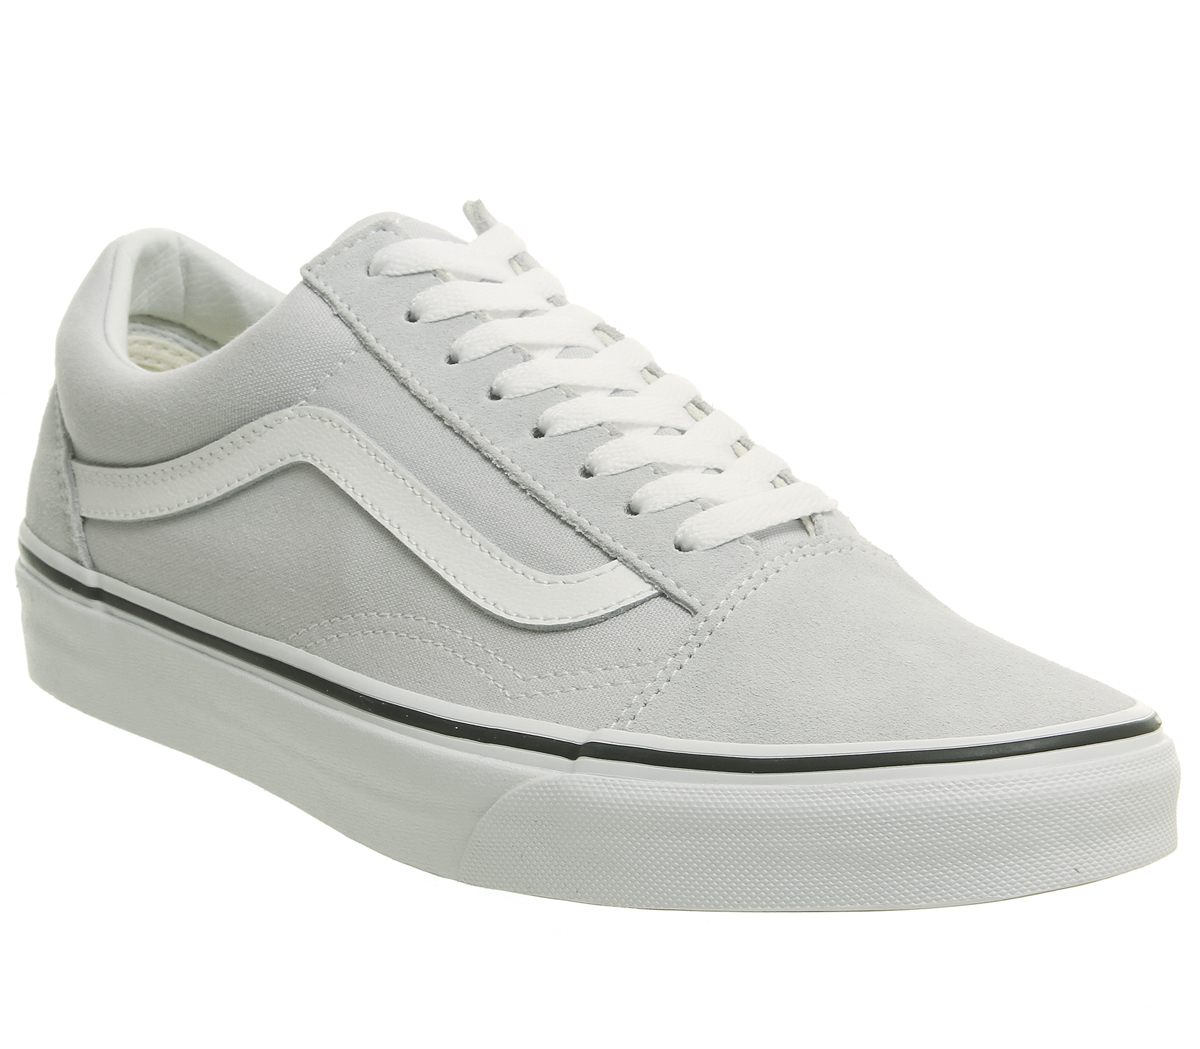 9eae374a1b Sentinel Thumbnail 1. Sentinel Mens Vans Old Skool Trainers Gray Dawn True  White Trainers Shoes